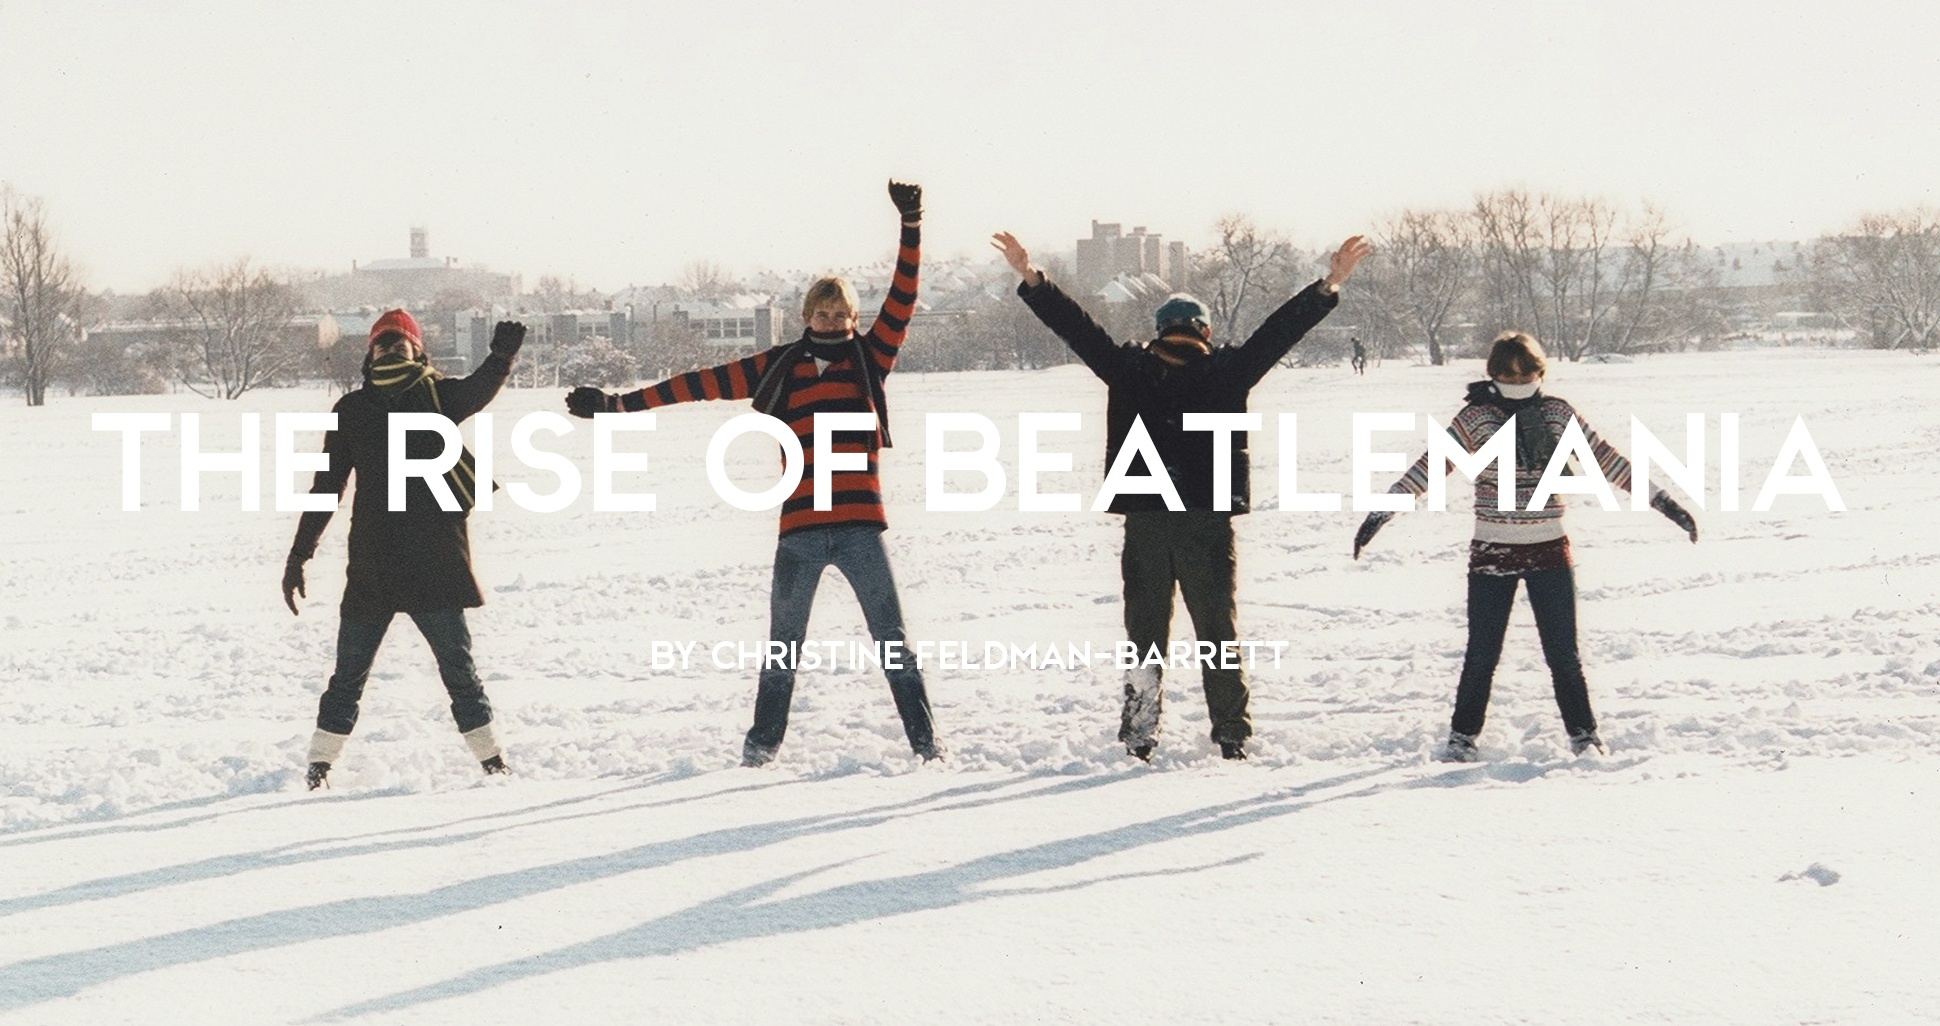 Teenage Beatles fans recreating cover of Help album in the snow in a park, London, 1980s by Mark Charnock